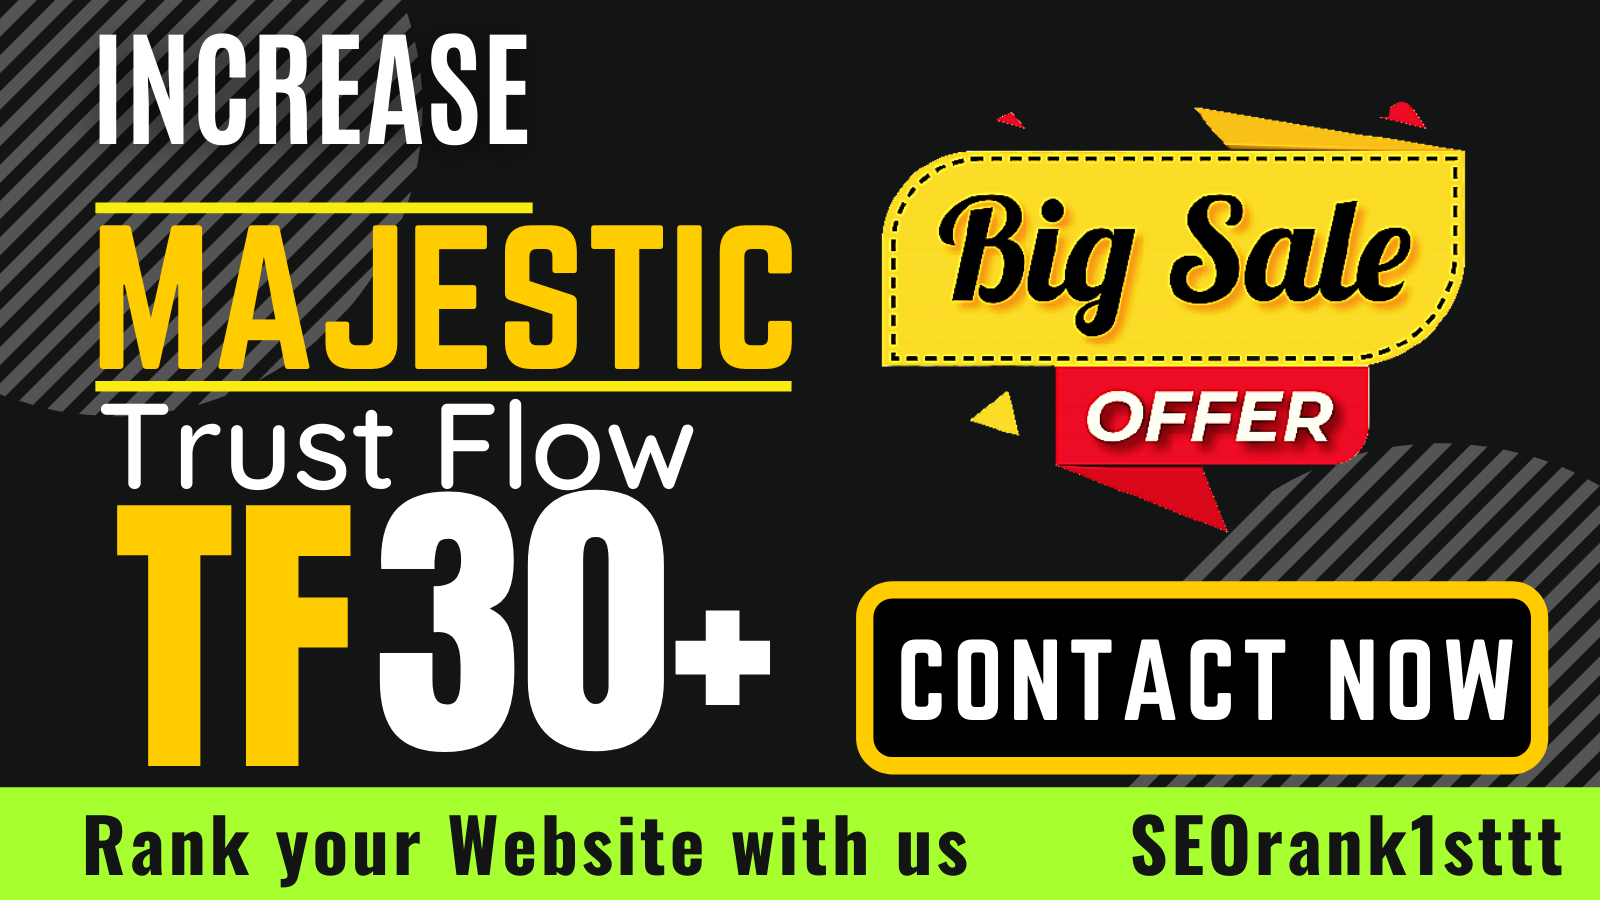 I will do increase majestic trust flow,  increase website tf